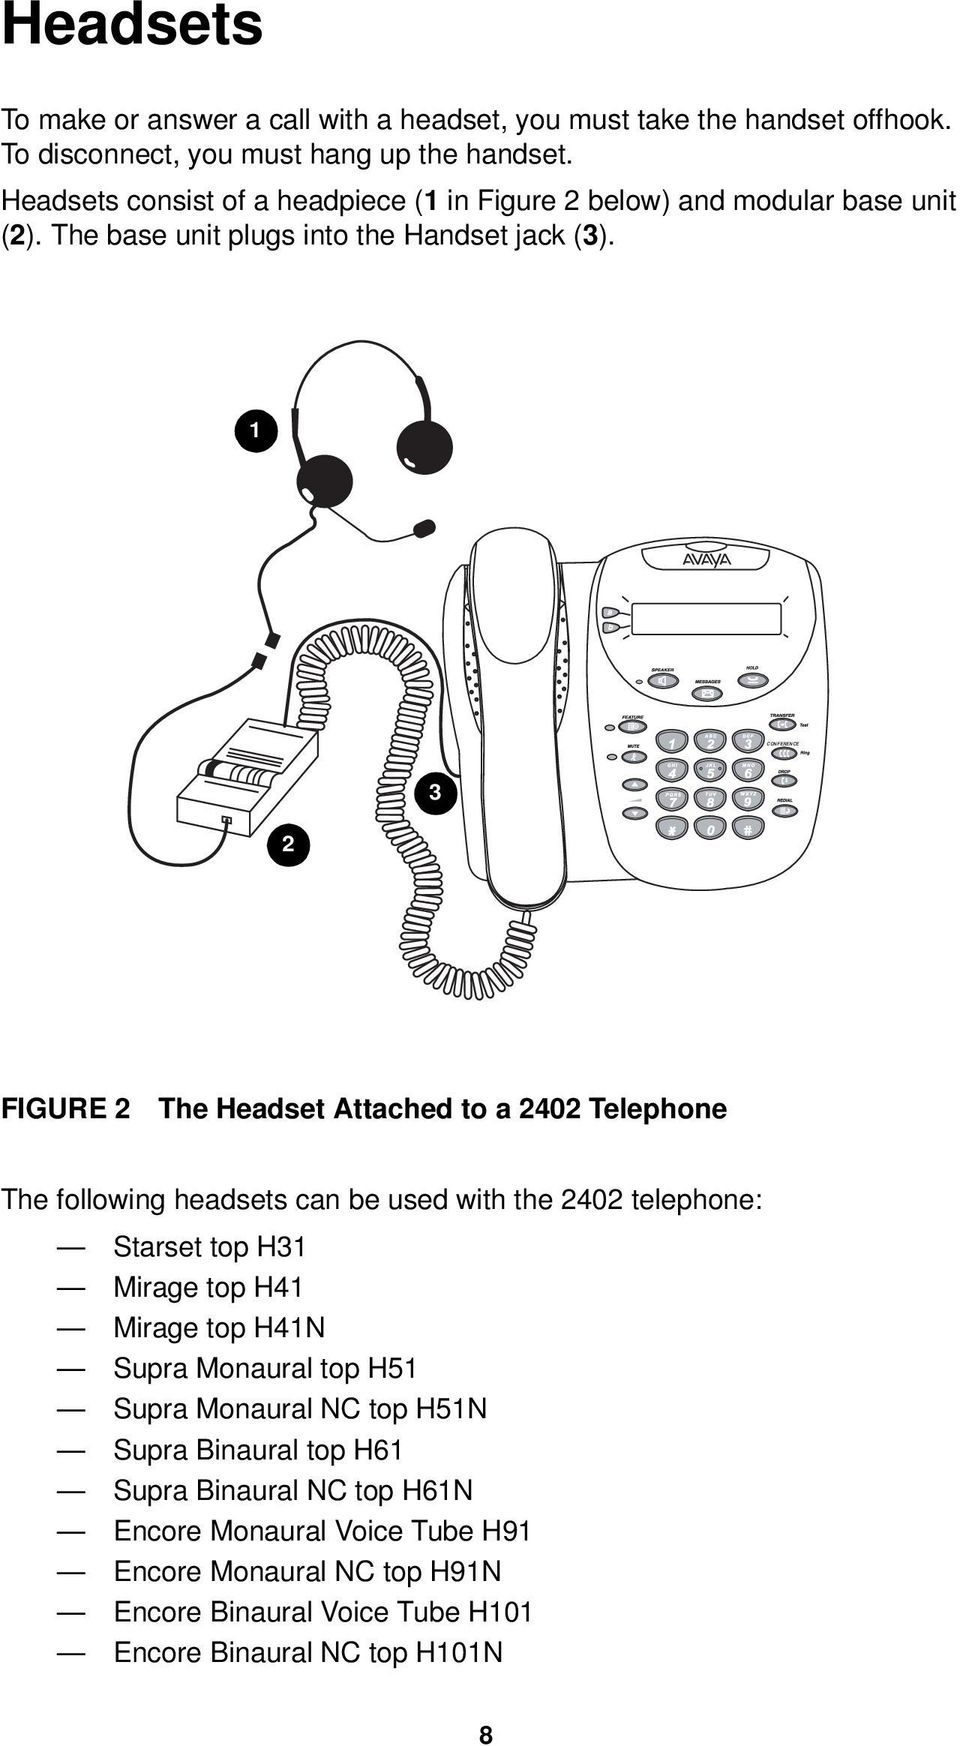 1 2 3 FIGURE 2 The Headset Attached to a 2402 Telephone The following headsets can be used with the 2402 telephone: Starset top H31 Mirage top H41 Mirage top H41N